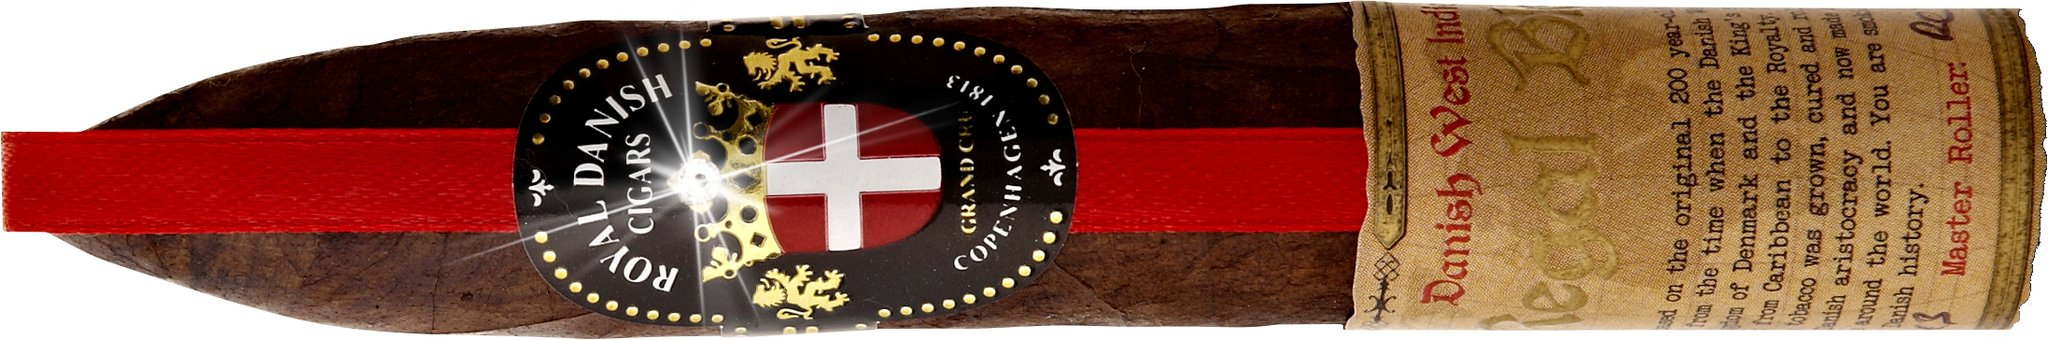 Royal Danish Cigars Regal Blend Danish West Indies Queens # 1